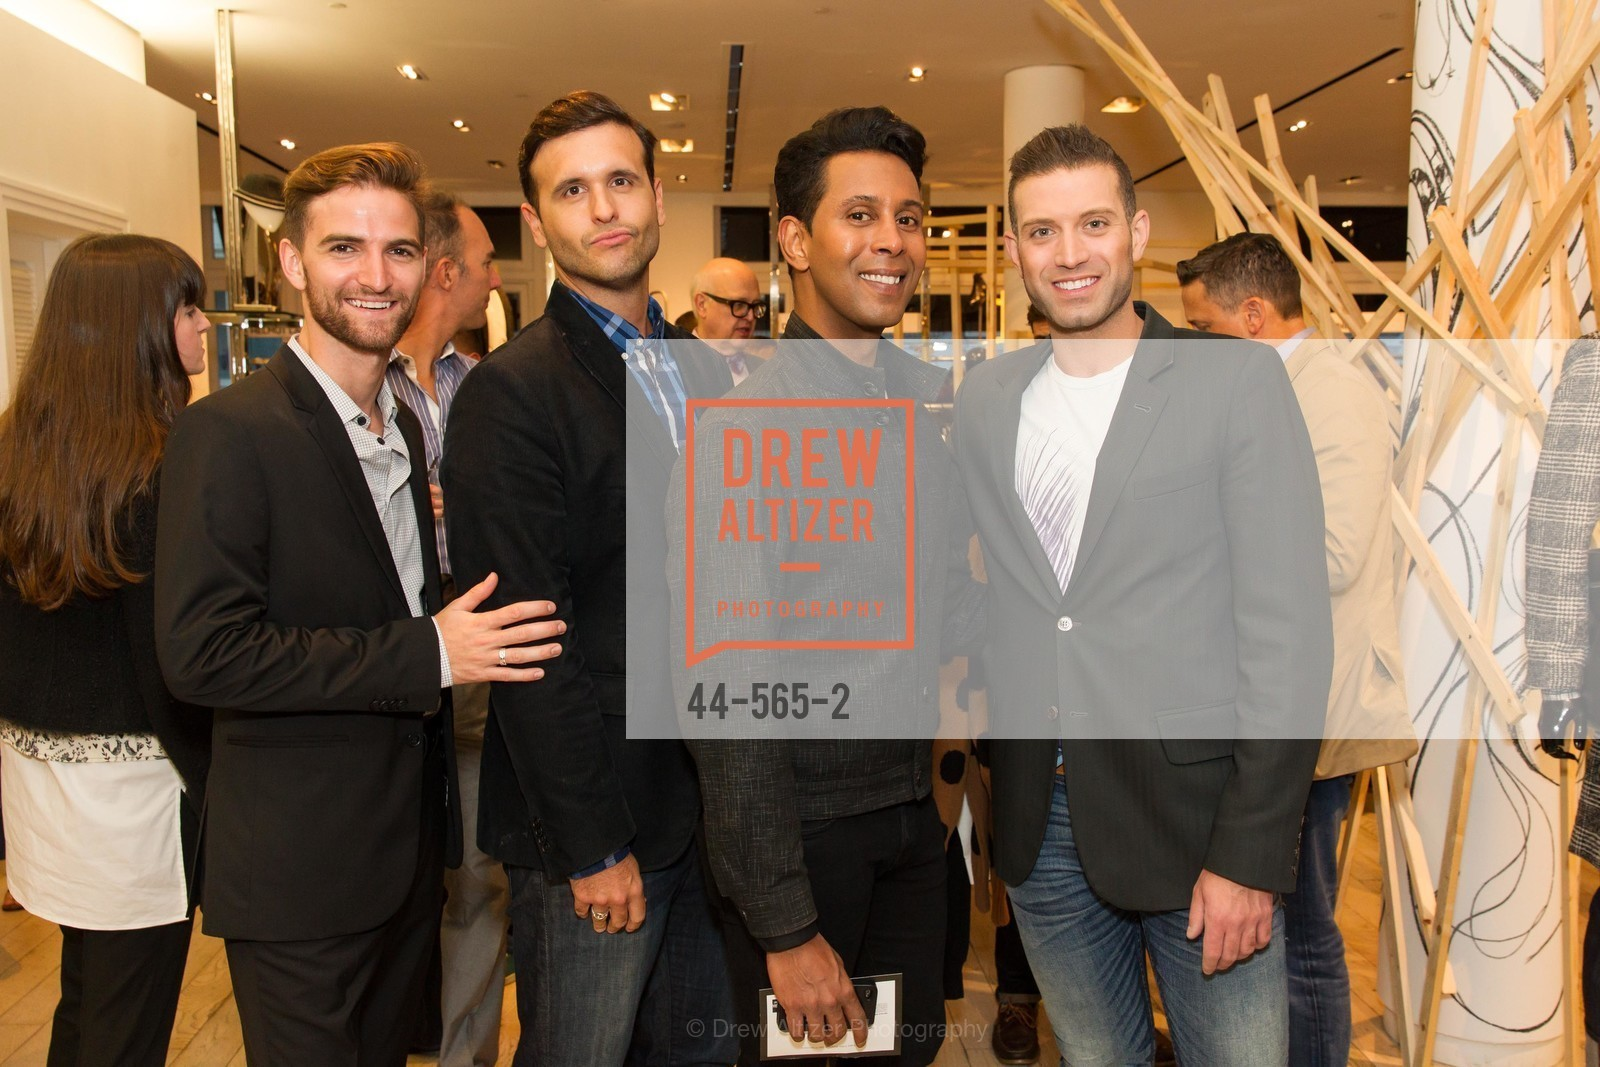 JD Scalzo, Emillio Mesa, Omar Sharif Jr., GLAAD GALA Kick-Off Party Hosted by SAKS FIFTH AVENUE, Saks Fifth Avenue. 384 Post Street, September 12th, 2014,Drew Altizer, Drew Altizer Photography, full-service agency, private events, San Francisco photographer, photographer california